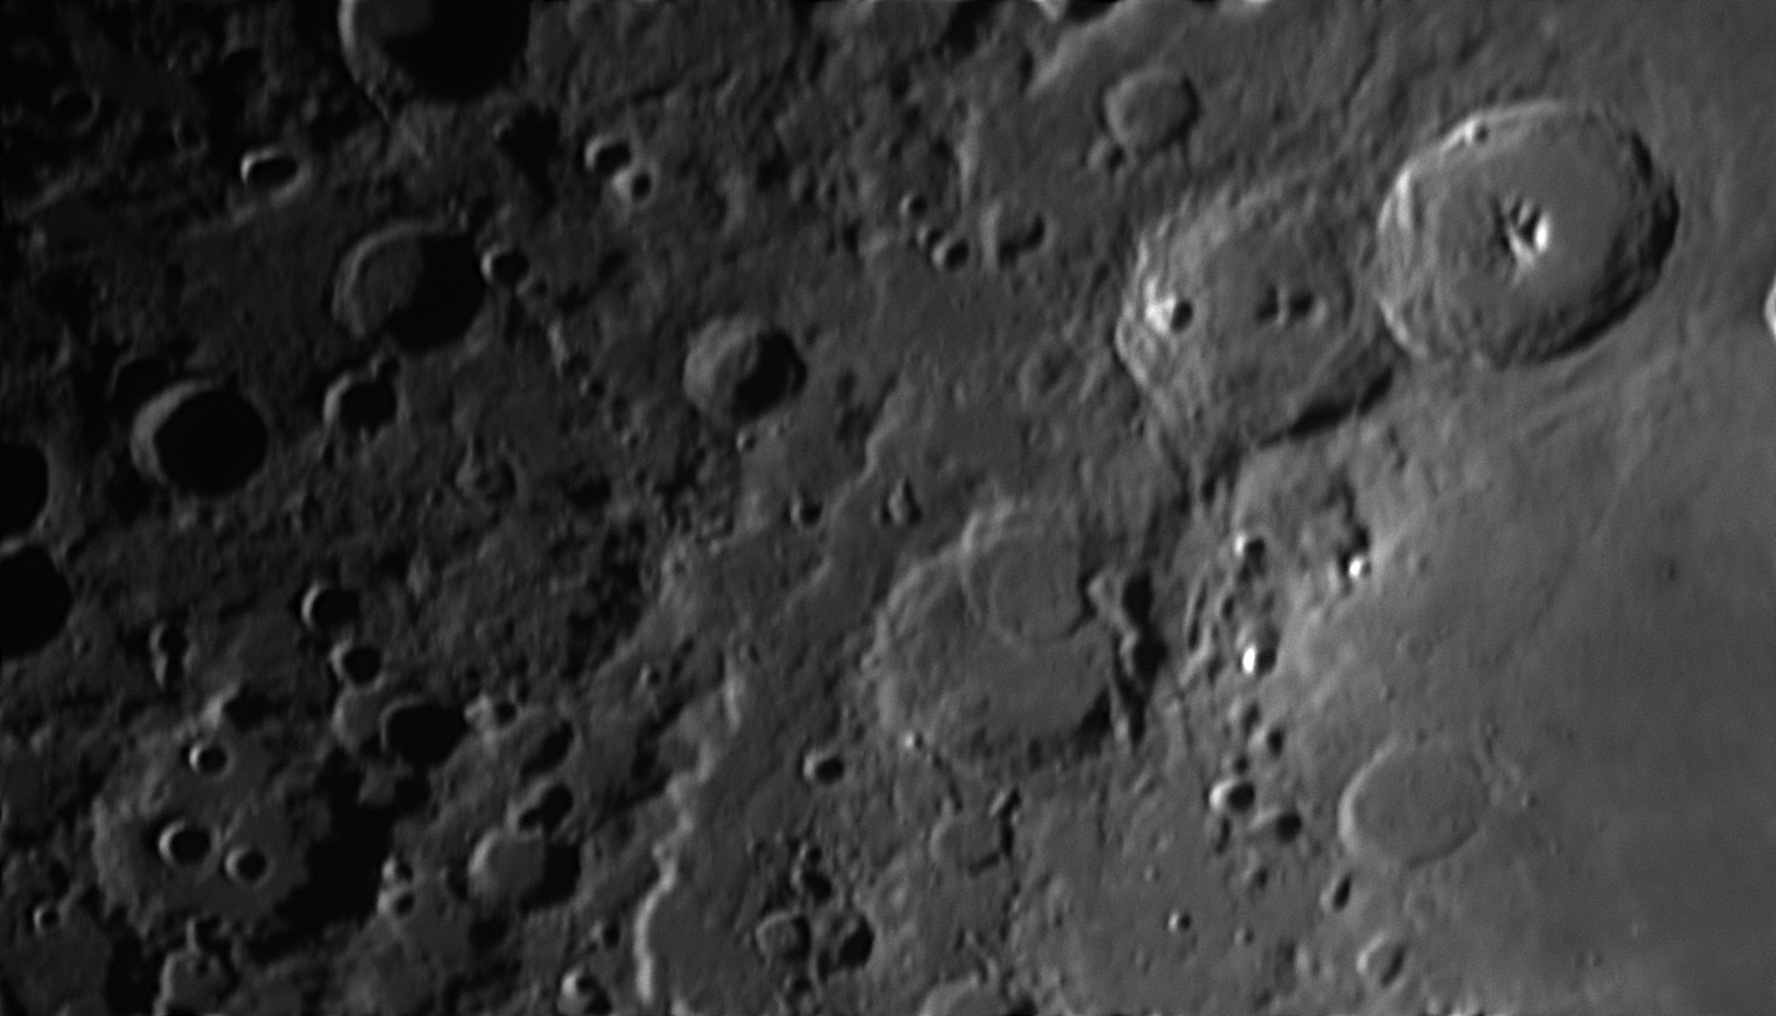 5de95a65df806_Moon_180228_031219_ZWOASI290MM_G_AS_P25_lapl6_ap442.jpg.380512858454221f0708e7476aed2128.jpg